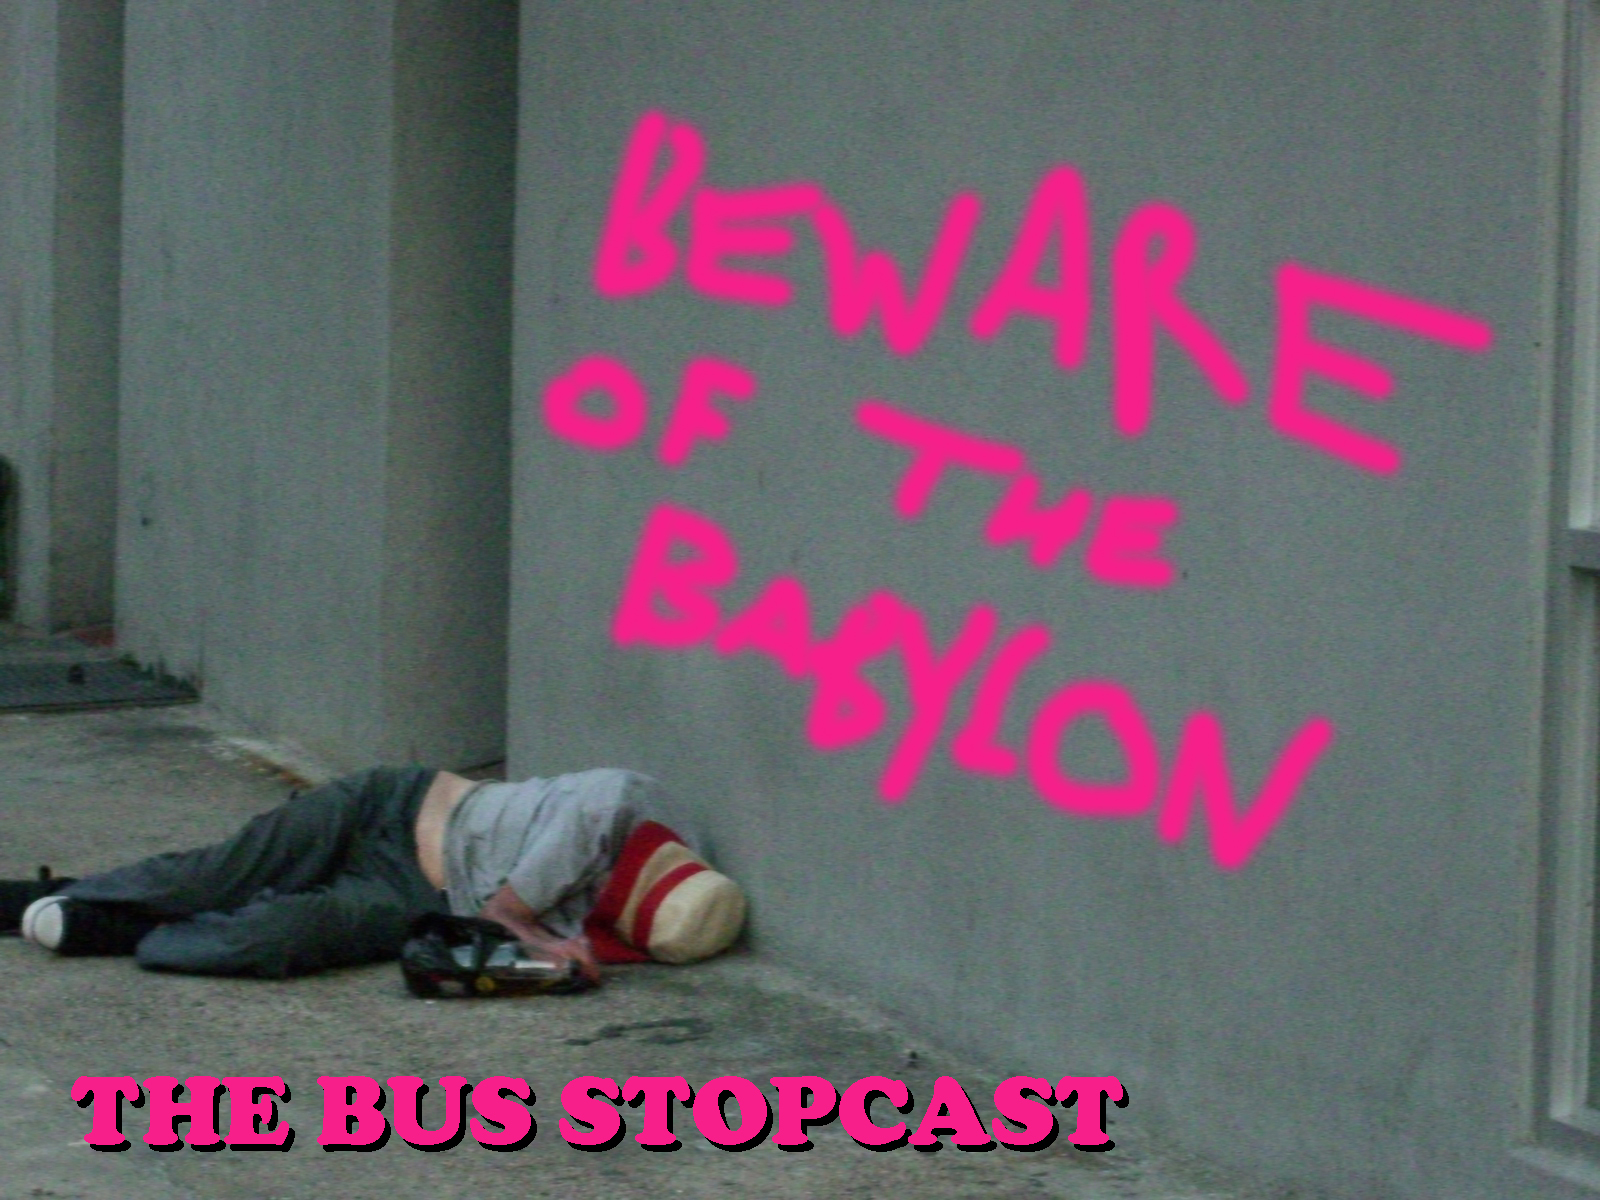 The Bus Stopcast - BEWARE OF THE BABYLON